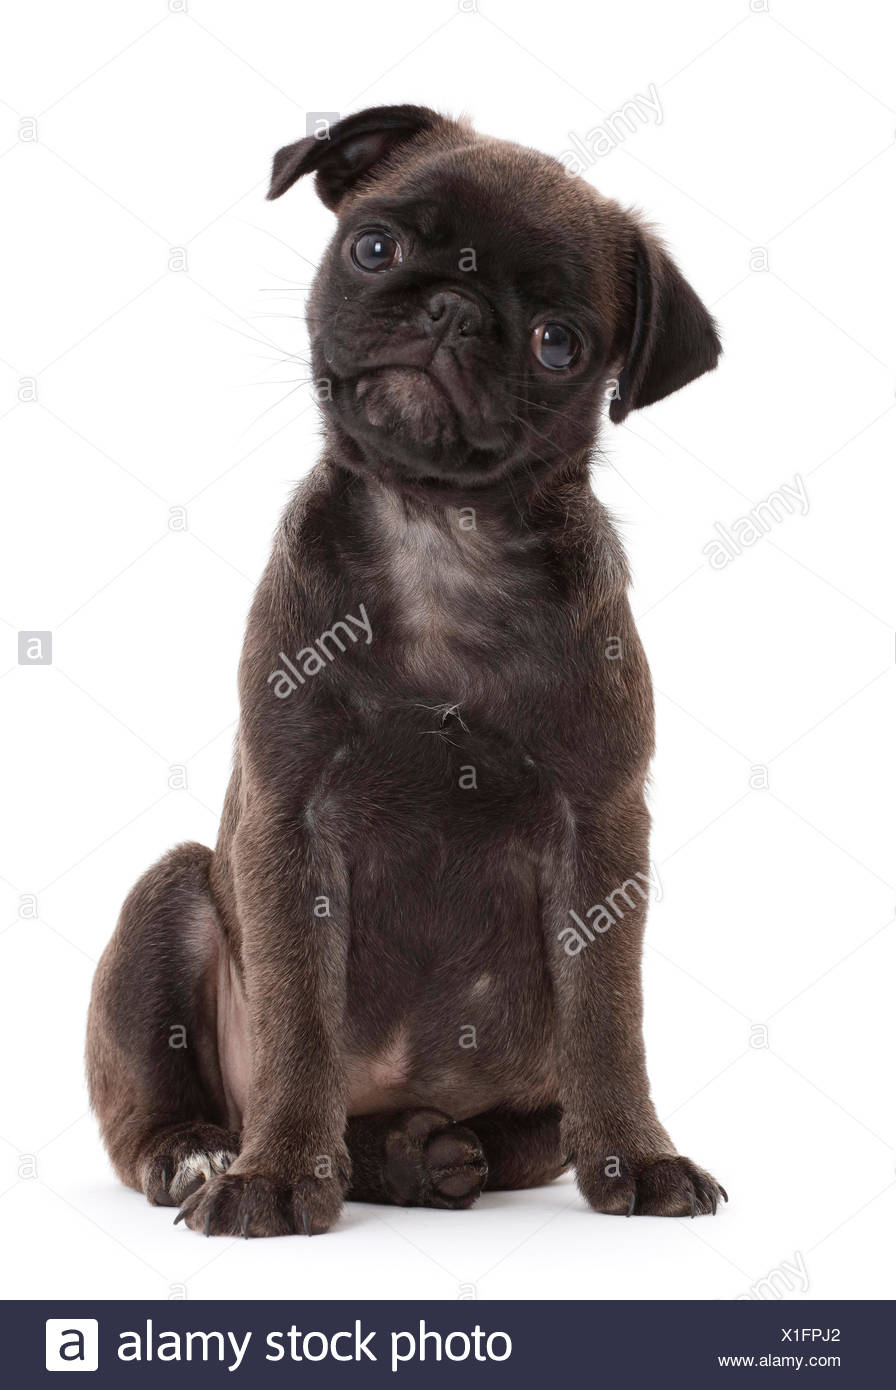 Platinum Pug puppy. - Stock Image